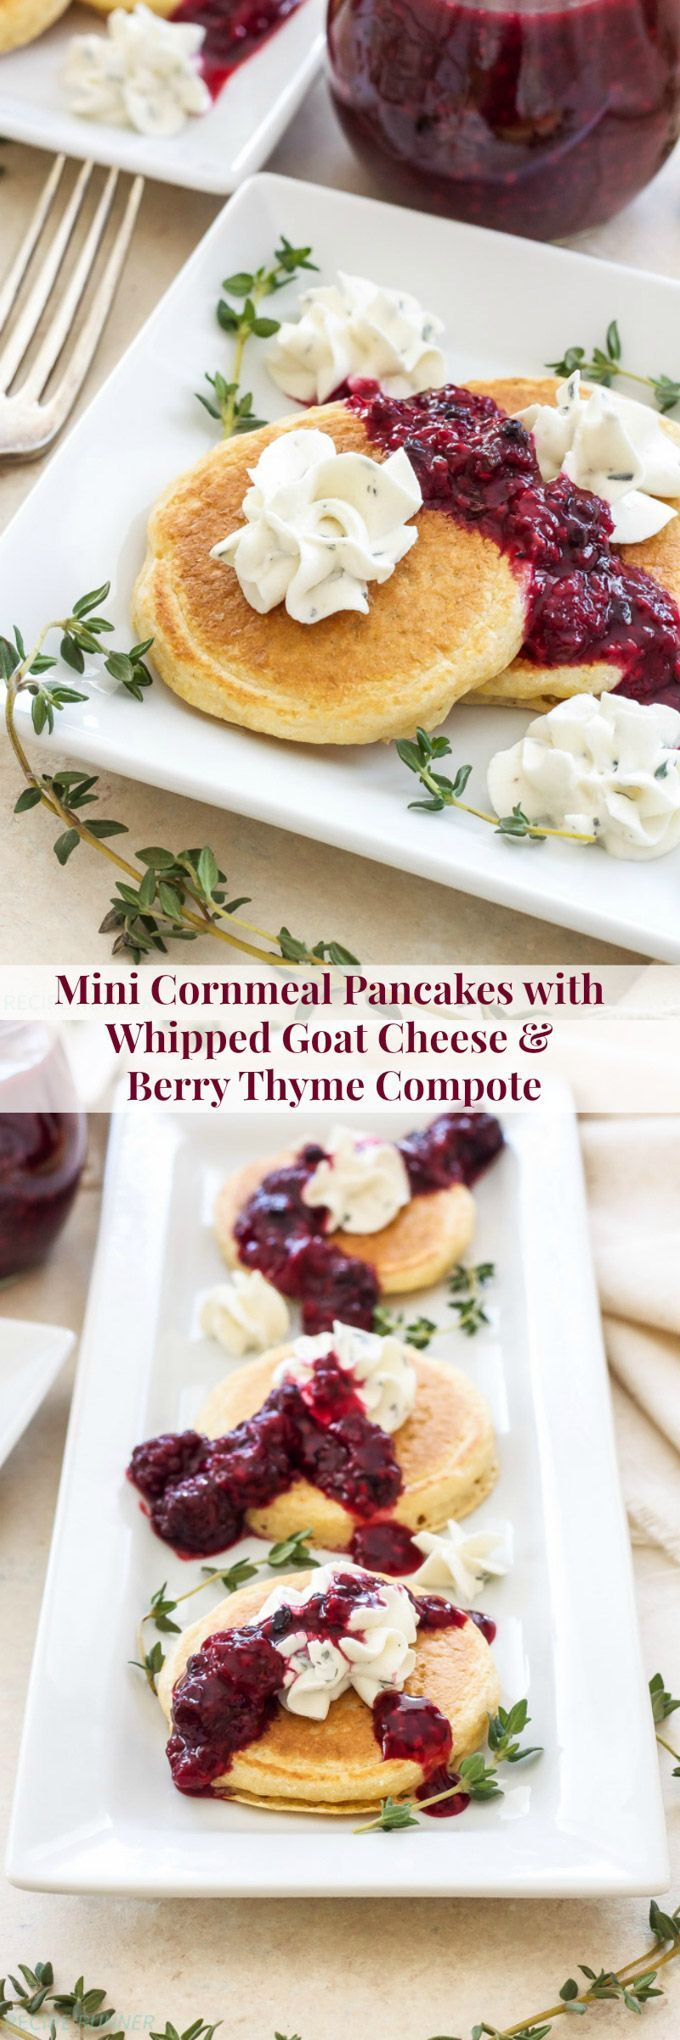 Mini Cornmeal Pancakes with Whipped Goat Cheese and Berry Thyme Compote   A delicious blend of sweet and savory flavors that can be served with brunch or as an appetizer!